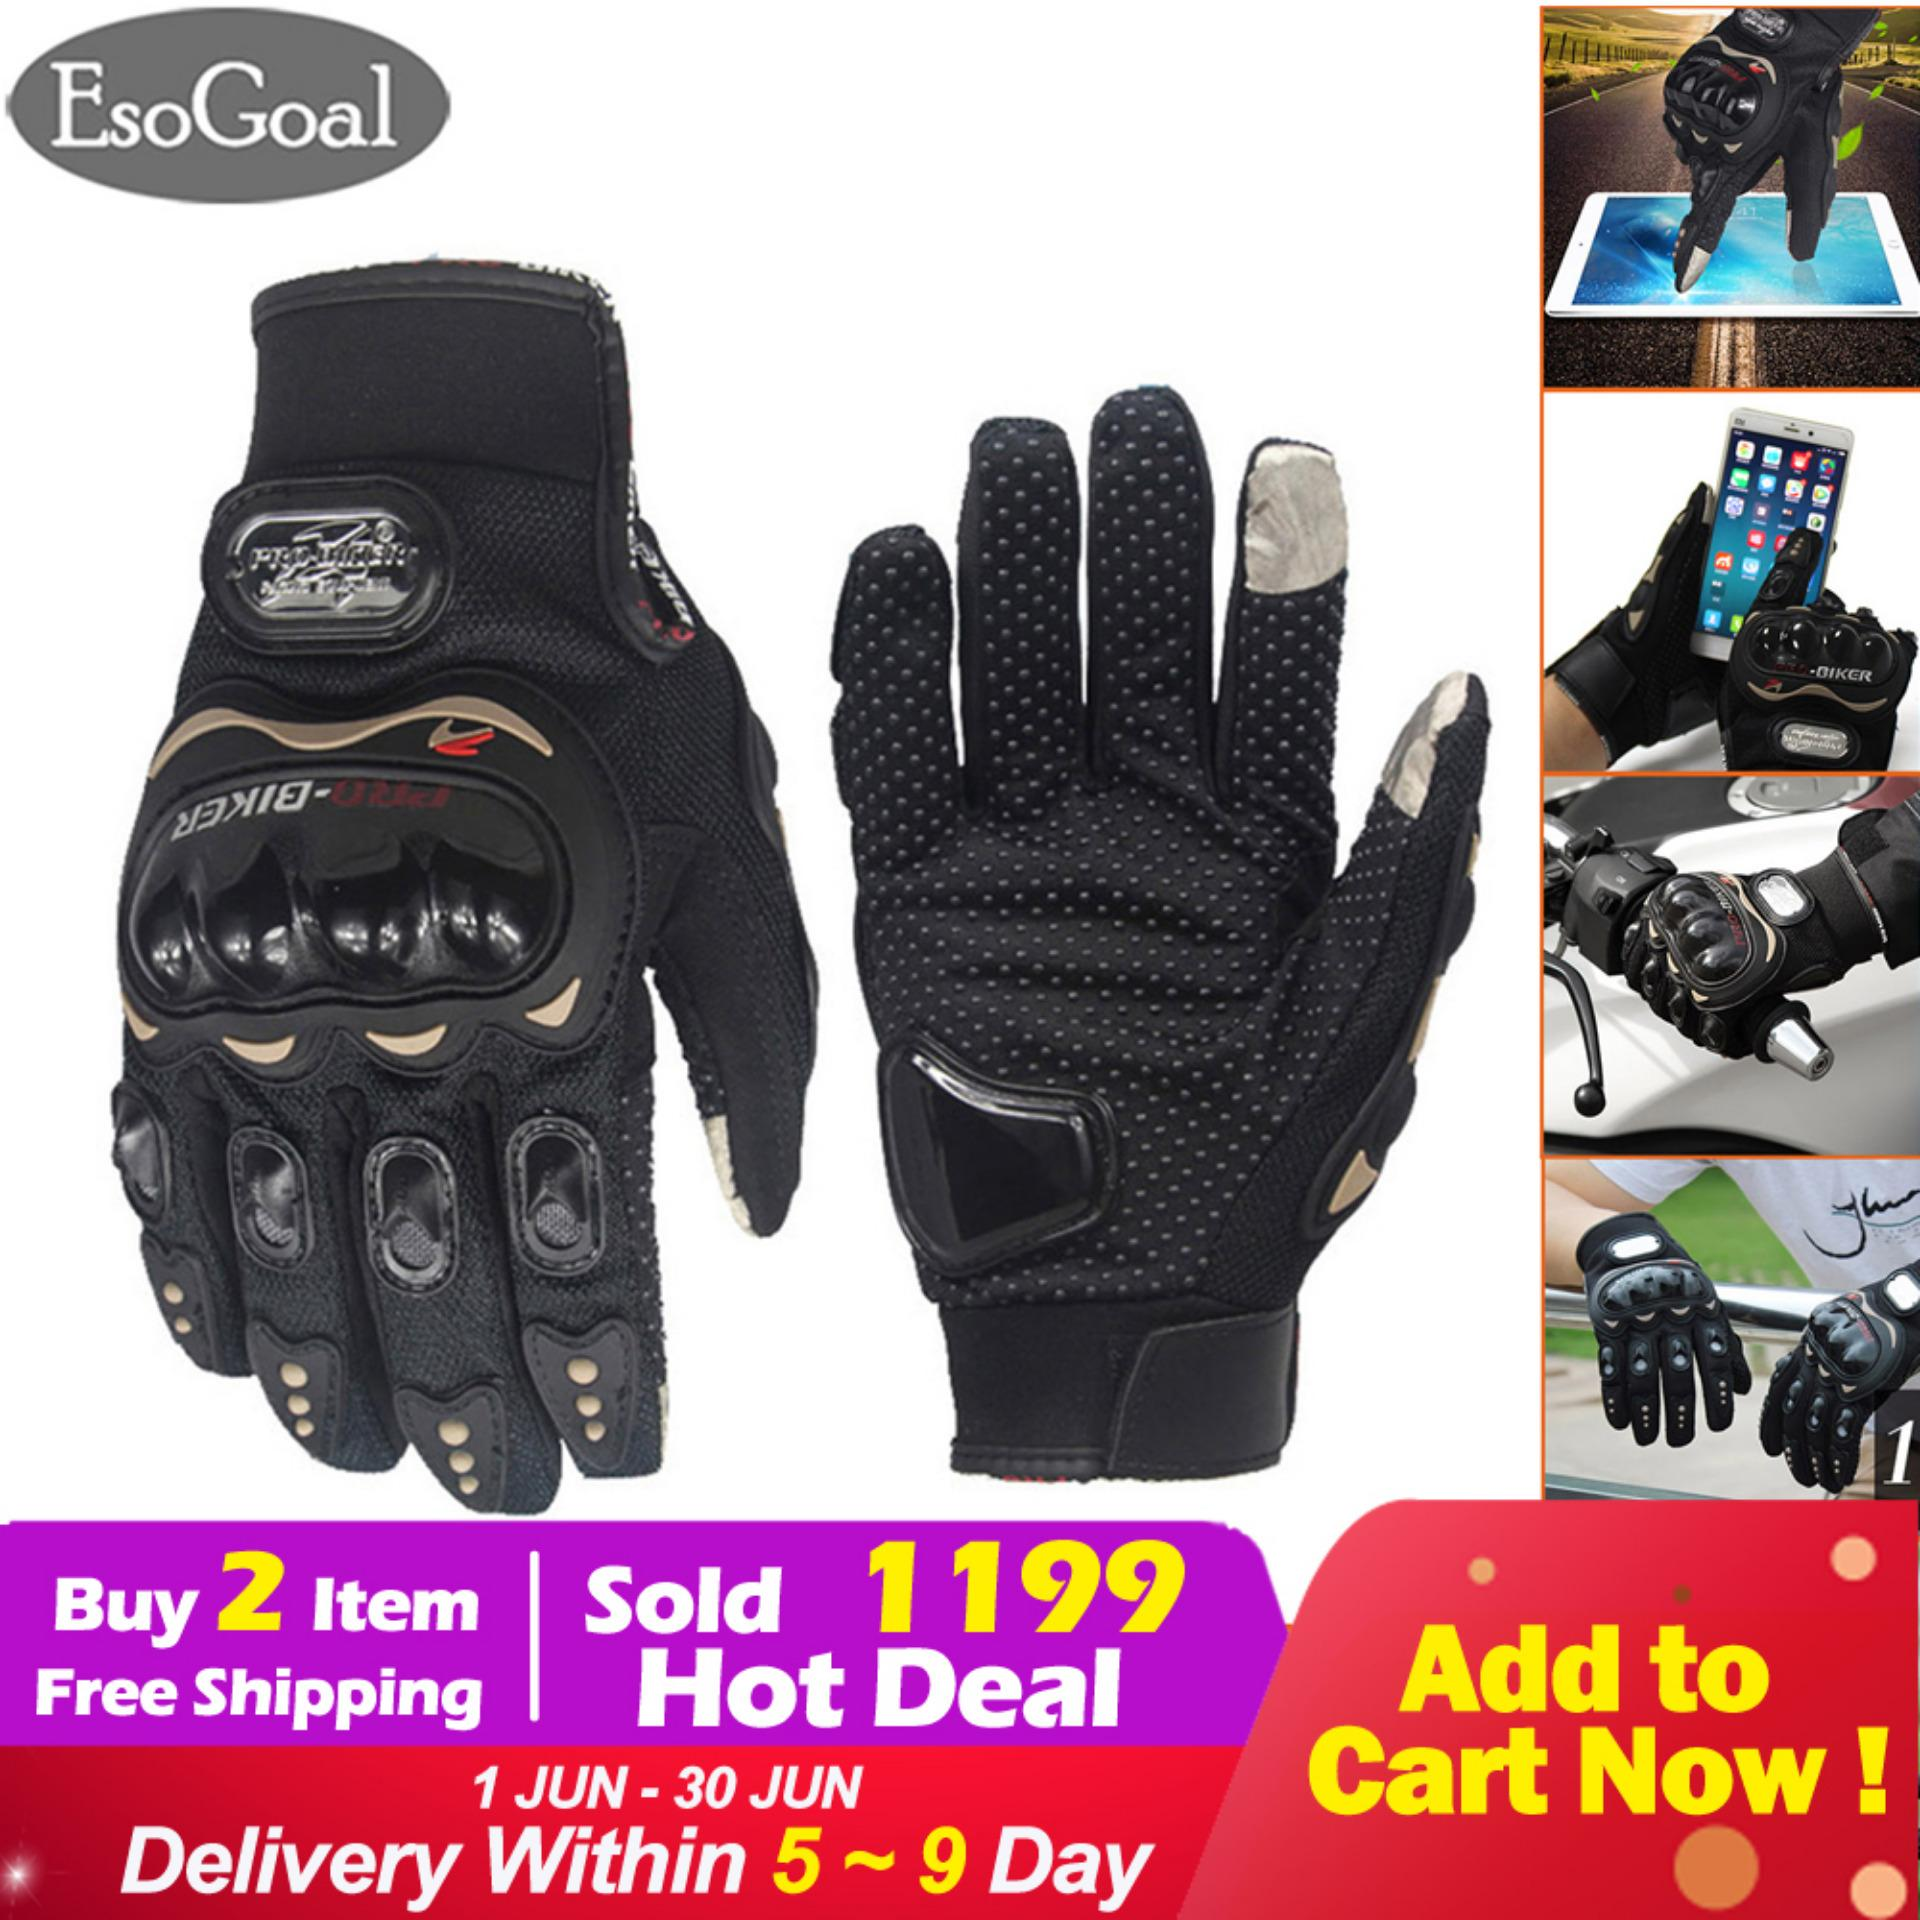 2d8ad409f4a EsoGoal Motorcycle Riding Gloves Carbon Fiber Bike Motorbike Racing Riding  Finger Protective Gloves Outdoor Cycling Hand